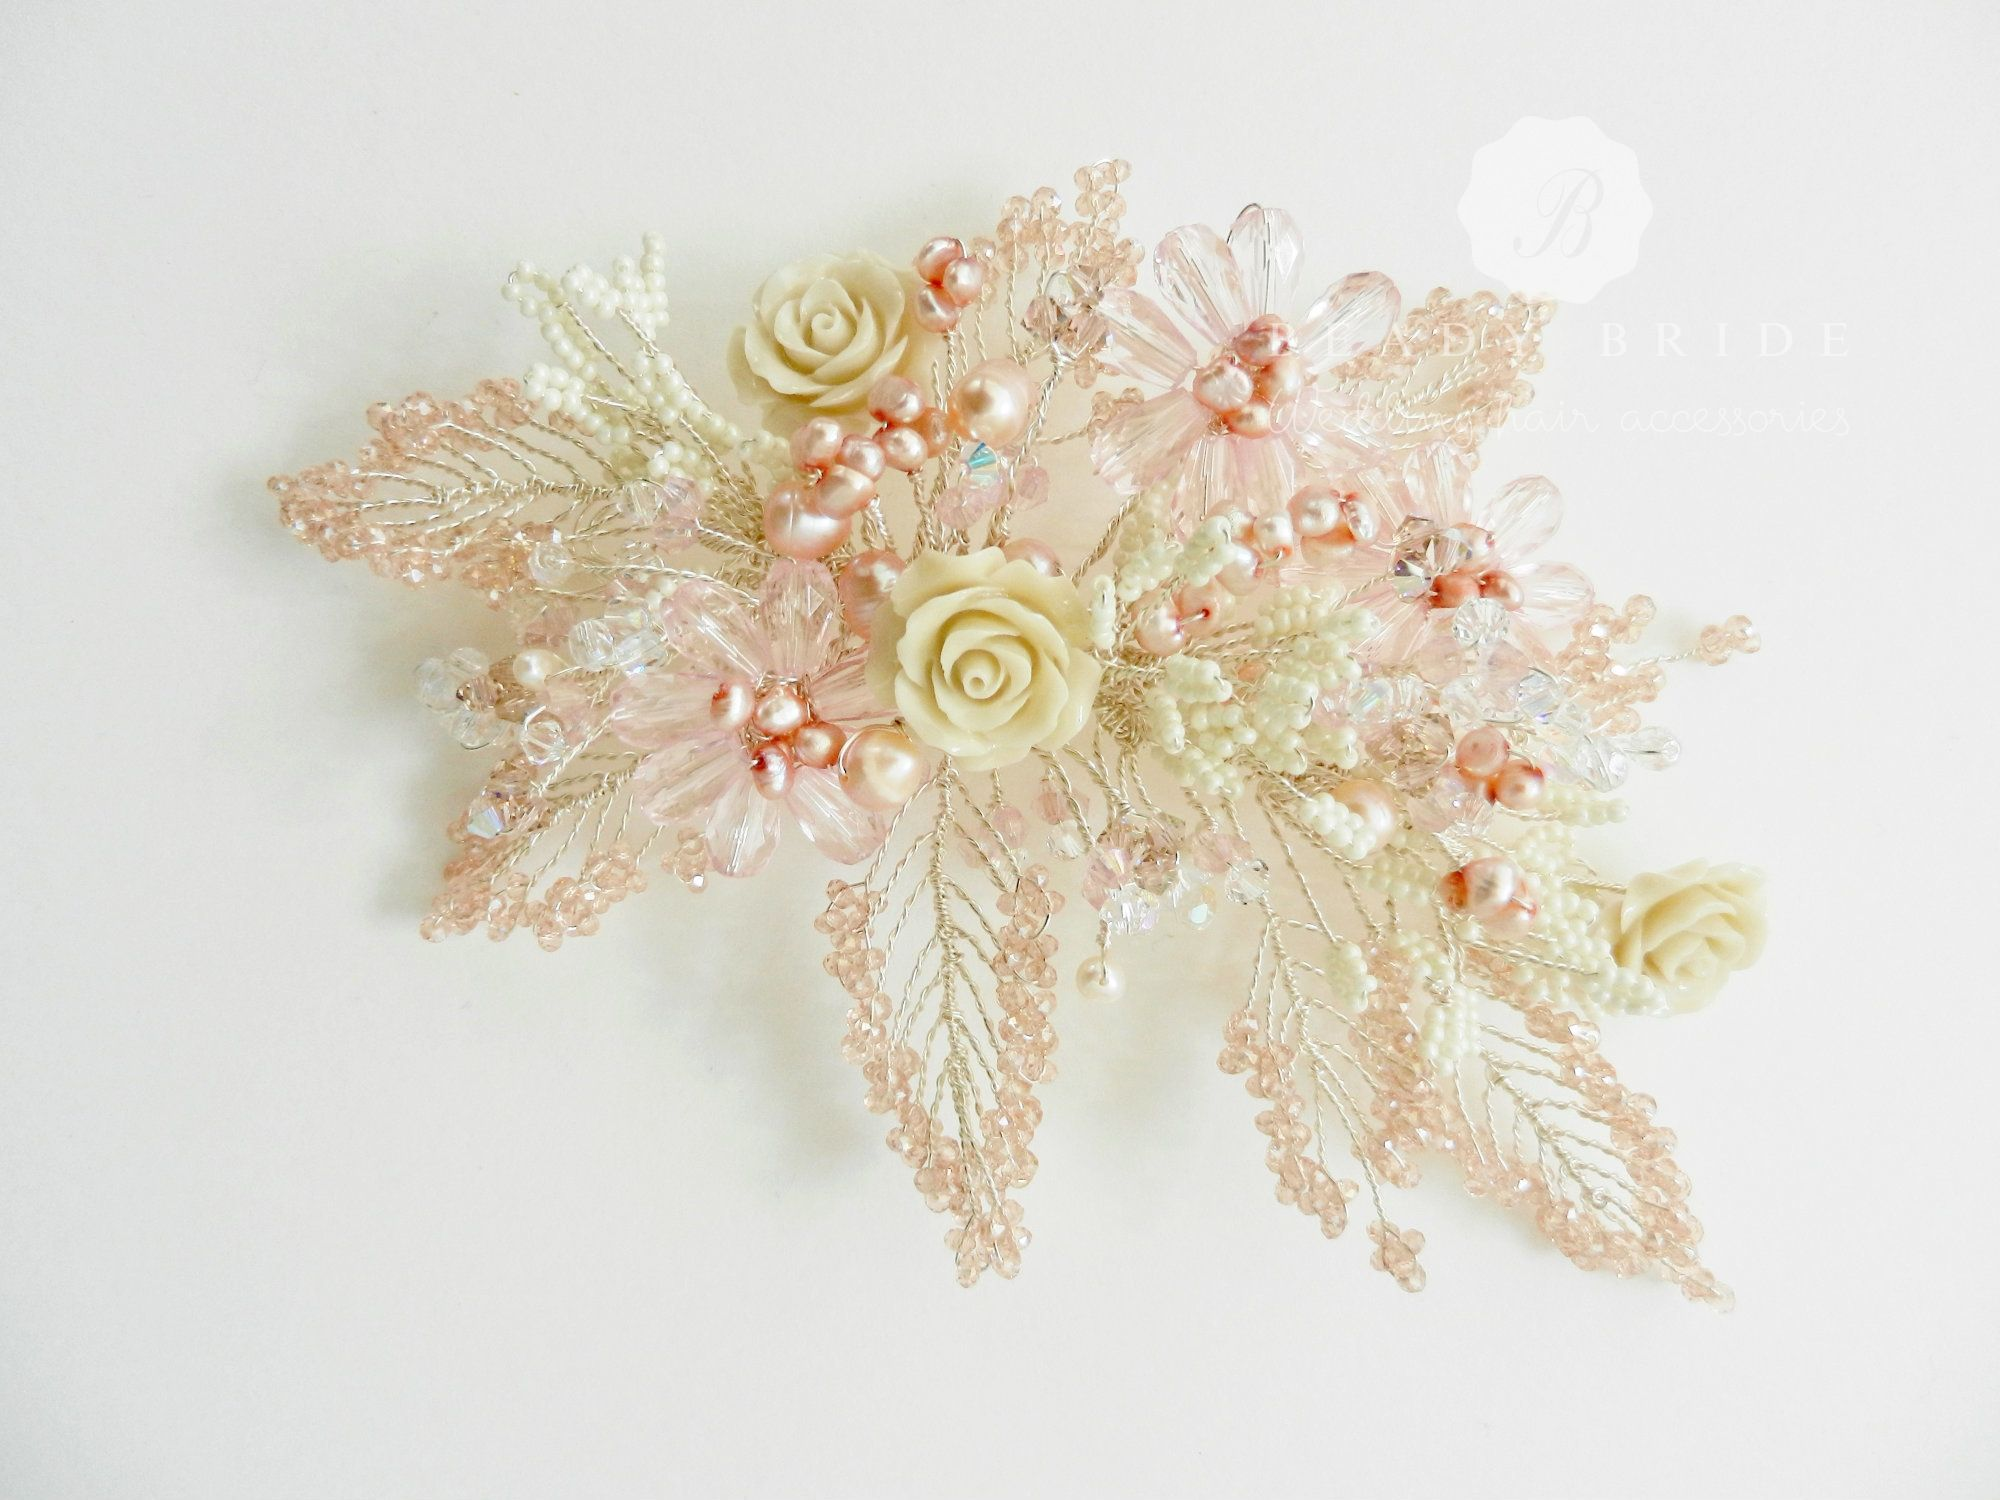 Delicately hand made floral bridal-wedding hair accessoriesby Beady Bride-UK